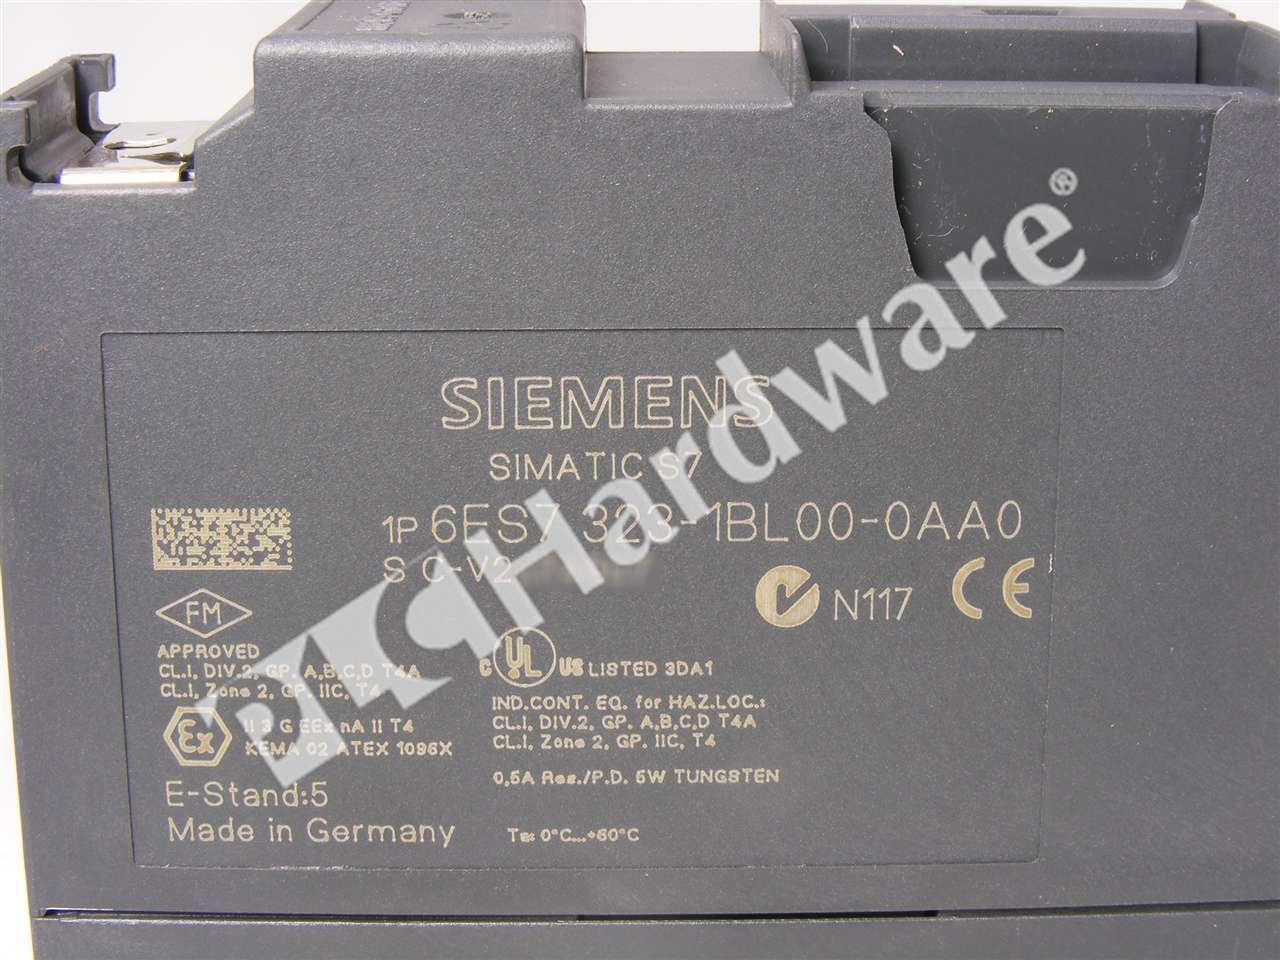 Siemens Simatic s7 6es7323-1bl00-0aa0 E-Stand 7